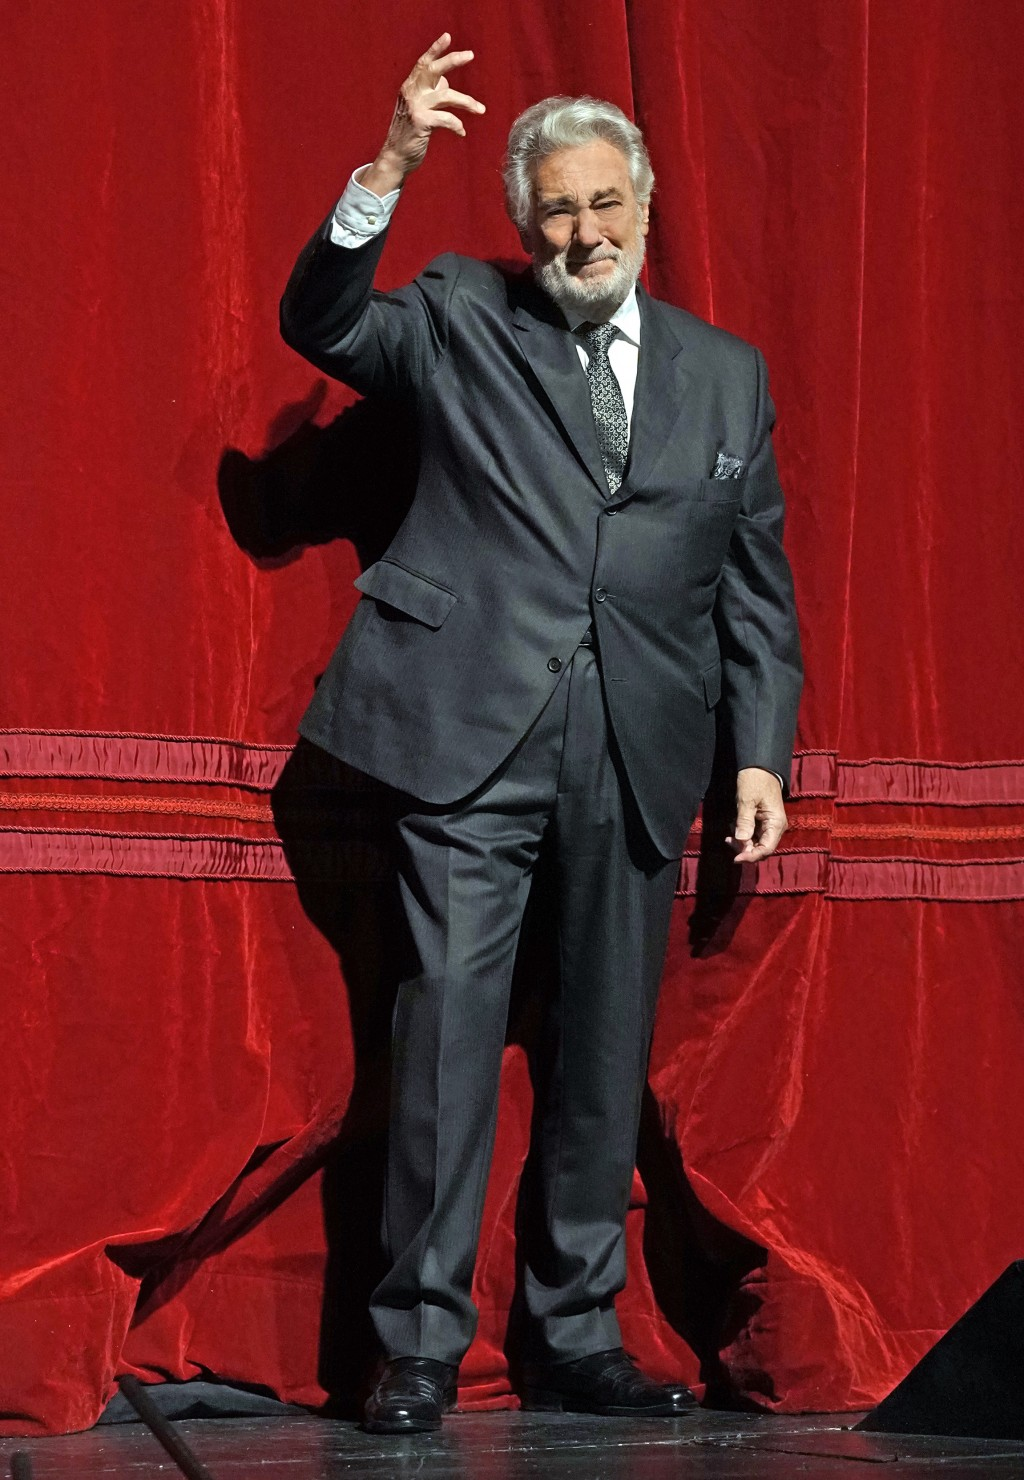 In this photo provided by the Metropolitan Opera, Placido Domingo stands on stage at the Metropolitan Opera, Friday, Nov. 23, 2018, in New York. Domin...